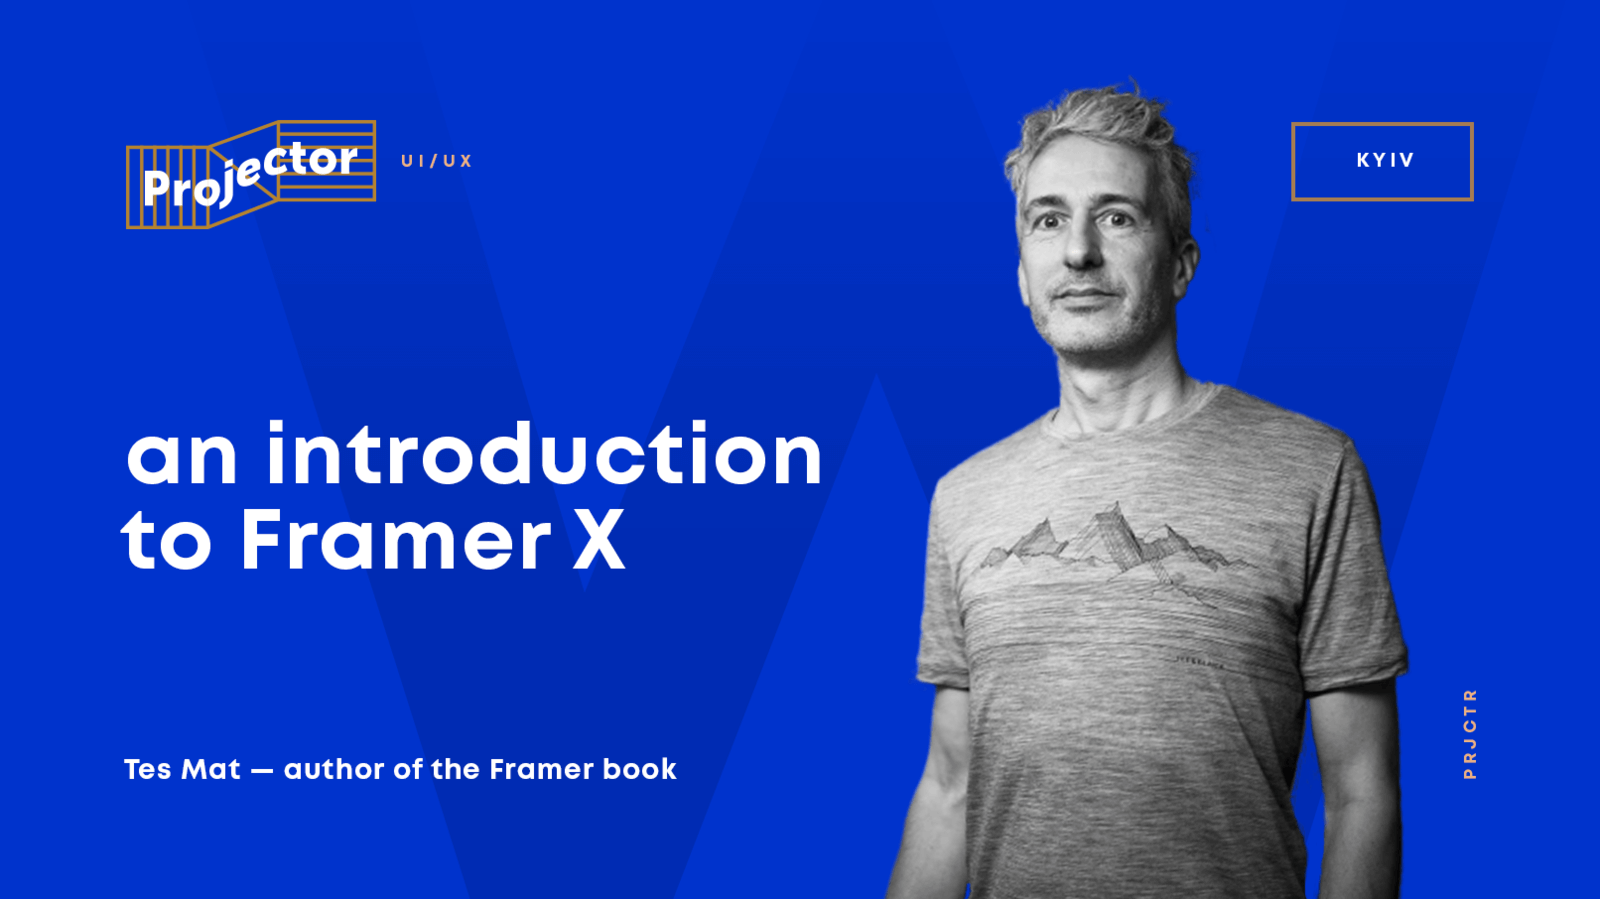 An introduction to Framer X